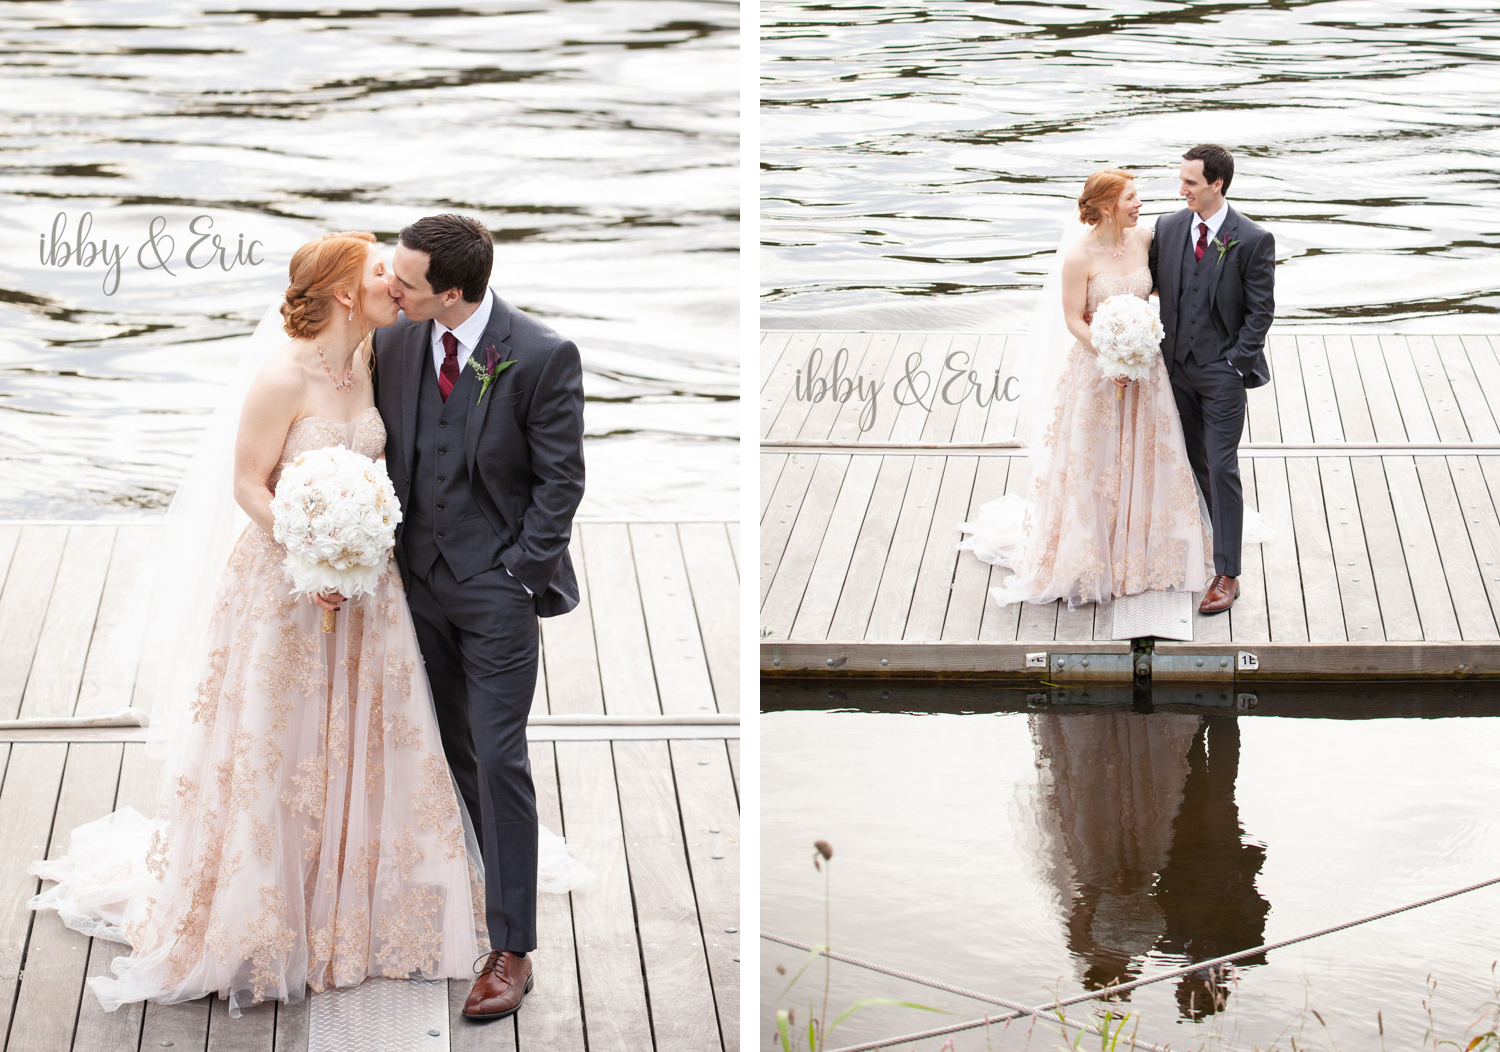 Bride and groom kissing and looking at each other while standing on a dock by the river.